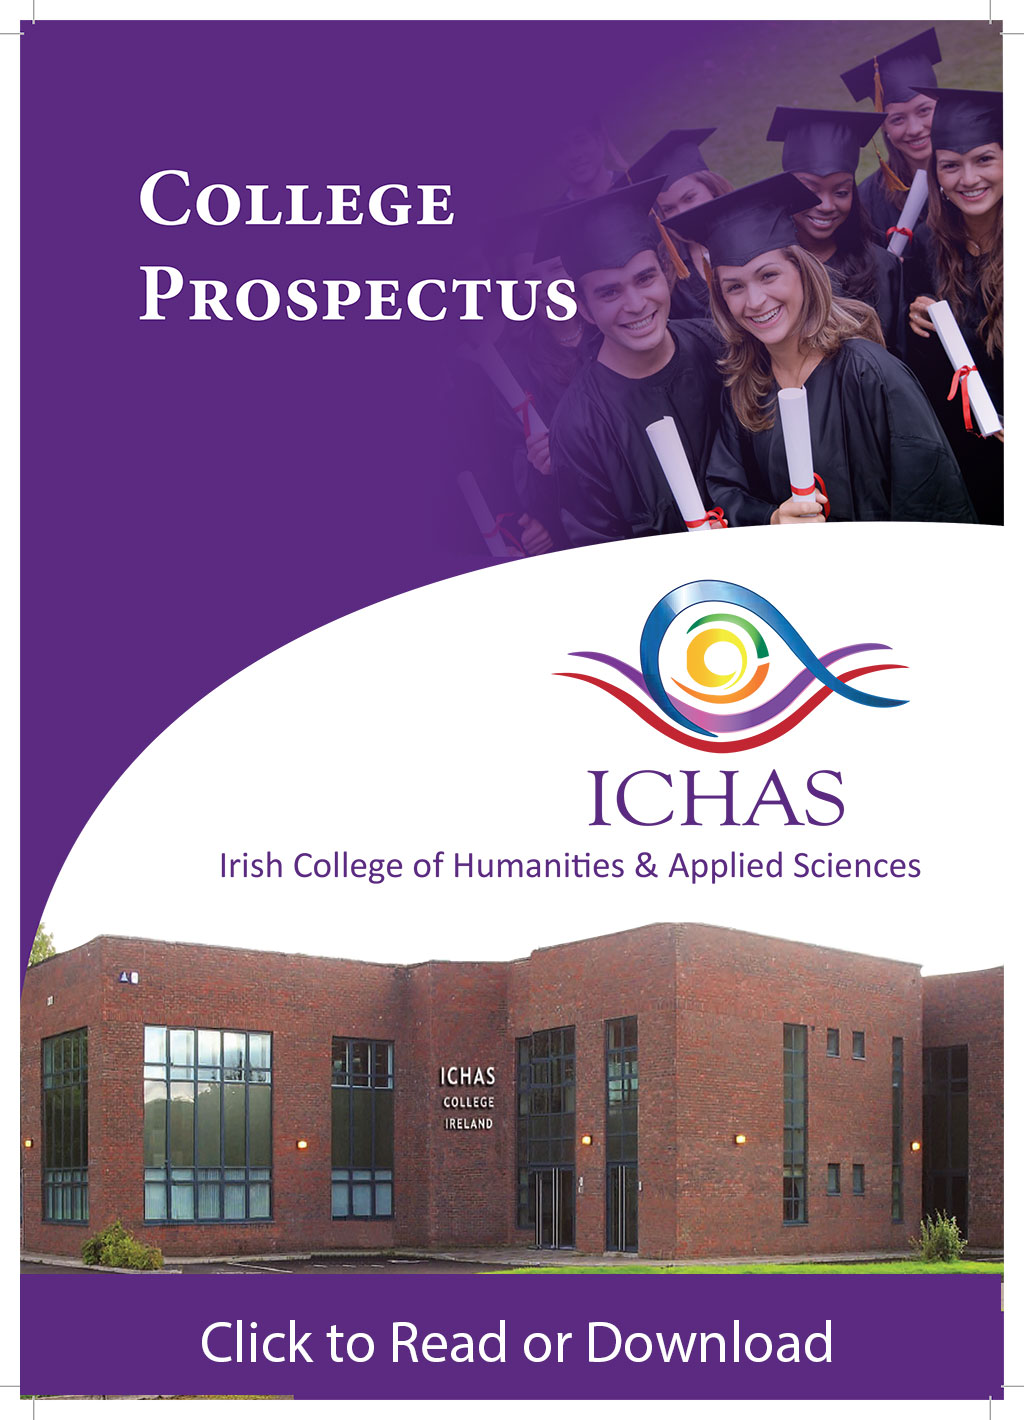 Counselling Courses, Business Courses, Dublin, Limerick, Ireland